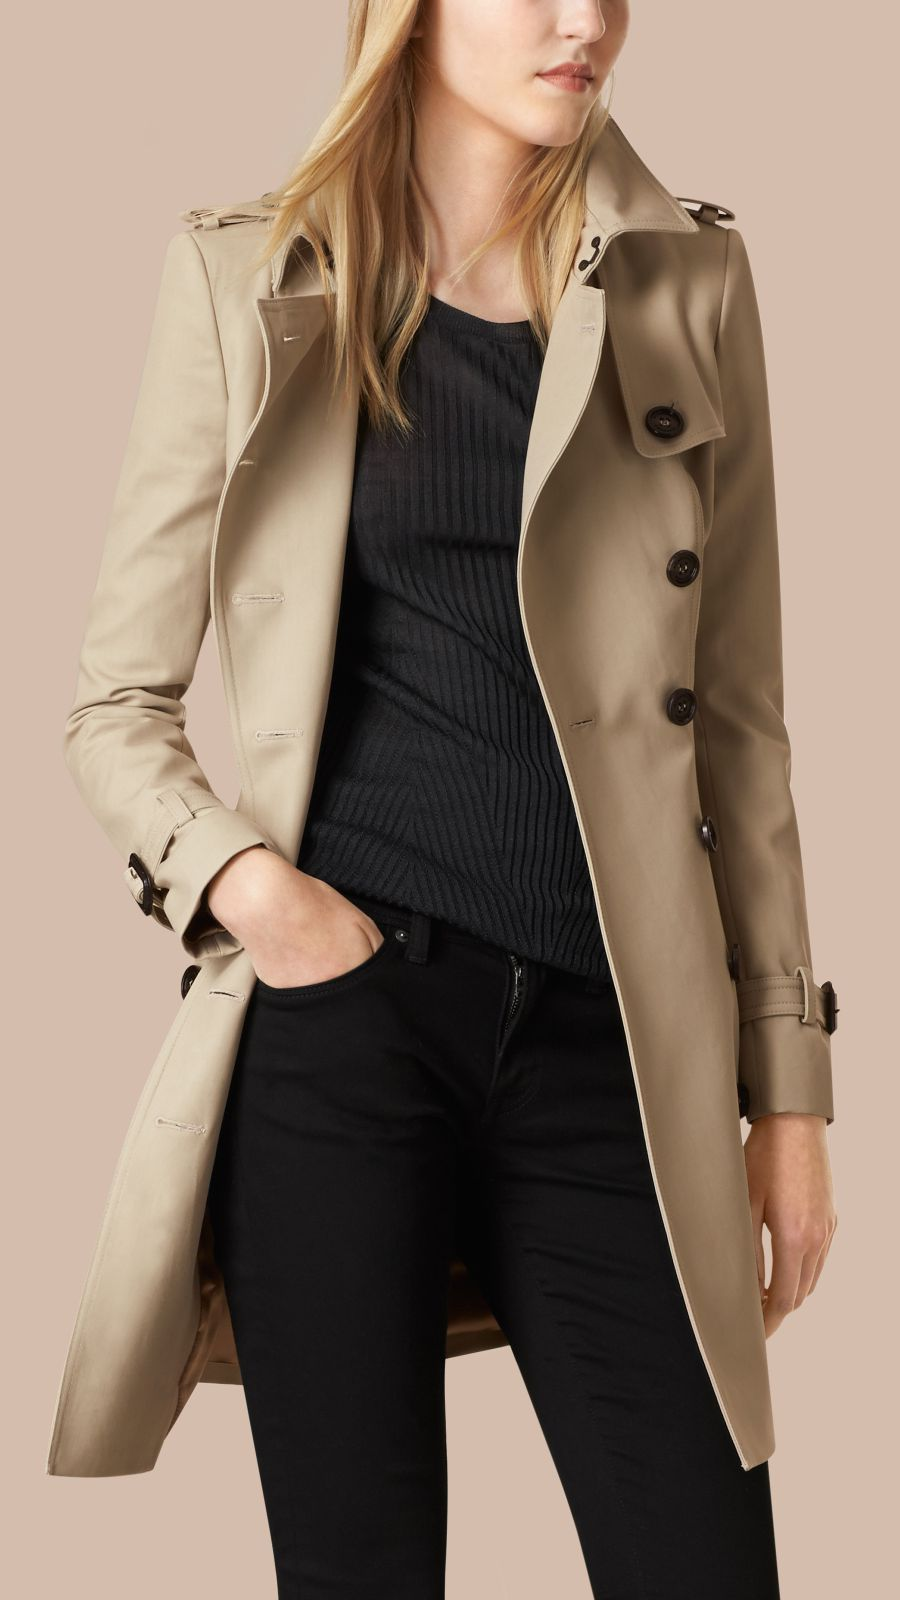 Trench Double Cotton Twill Trench Coat - Image 3